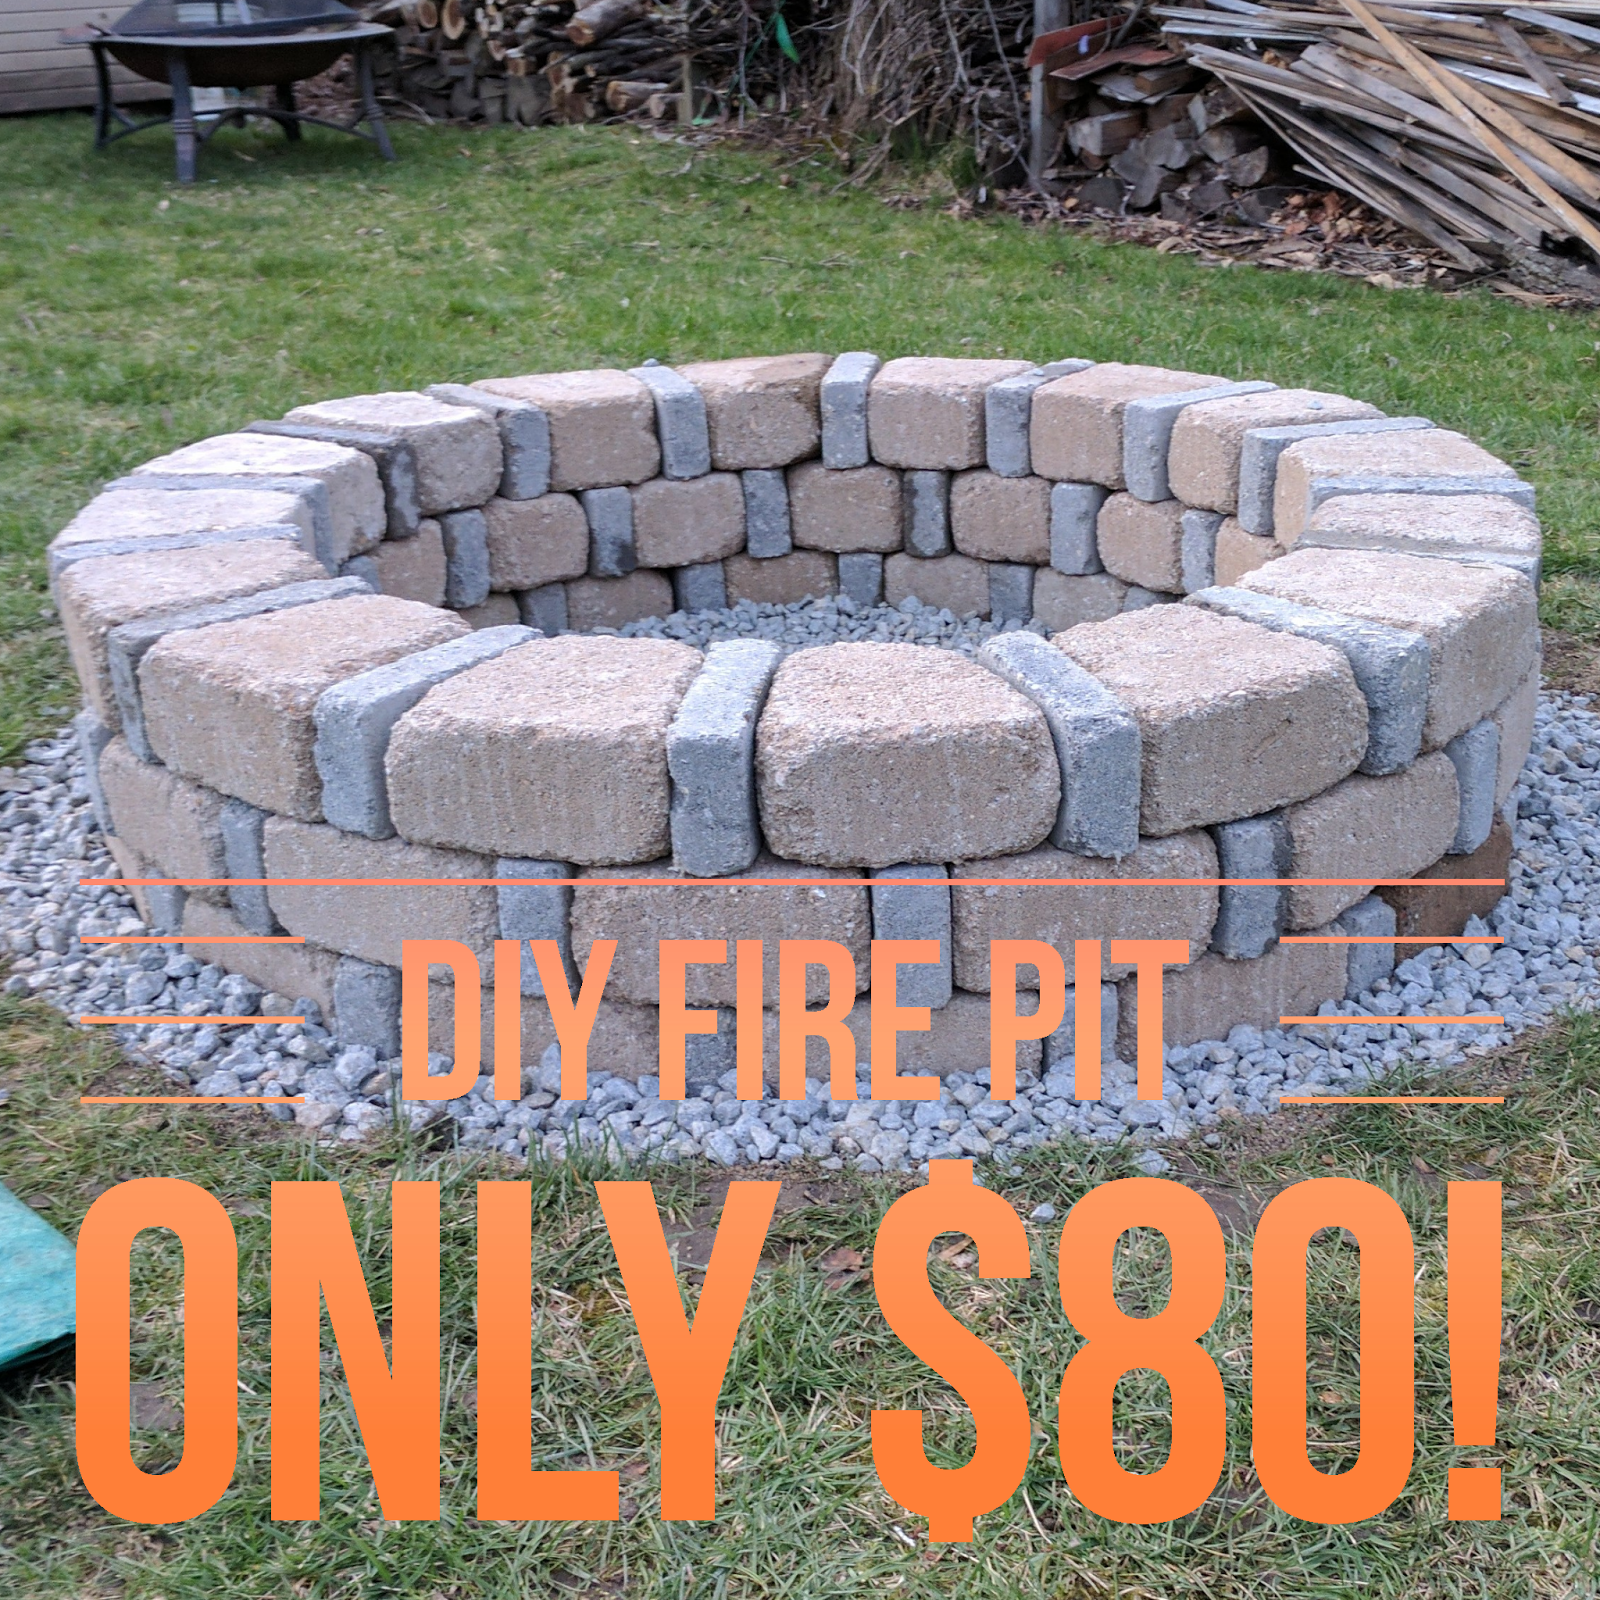 A Fire Pit Or A Fire Hole Can Change From A Pit Dug In The Arena To An Elaborate Gas Burning Structure Of Stone Brick A Brick Fire Pit Fire Pit